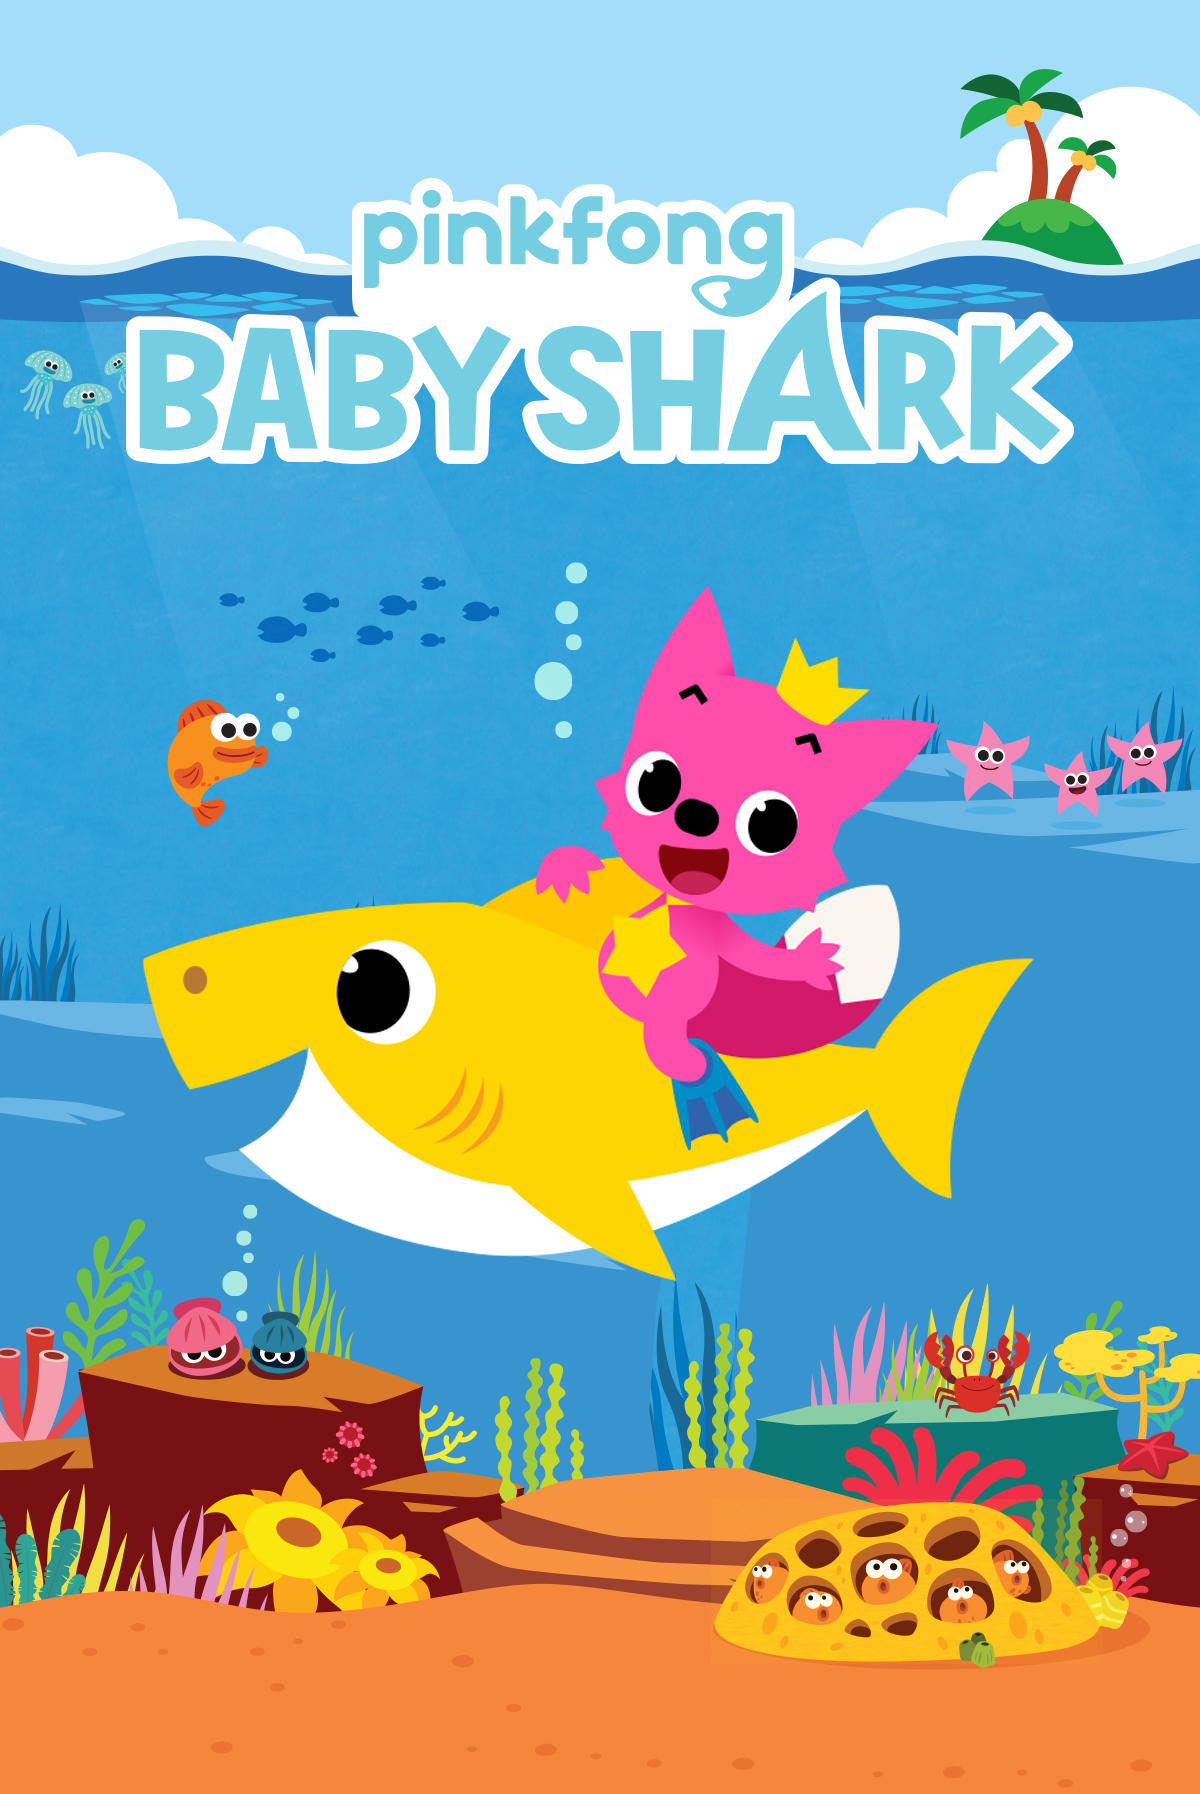 It's Official: Nickelodean to Turn Baby Sharks into an Animated Series